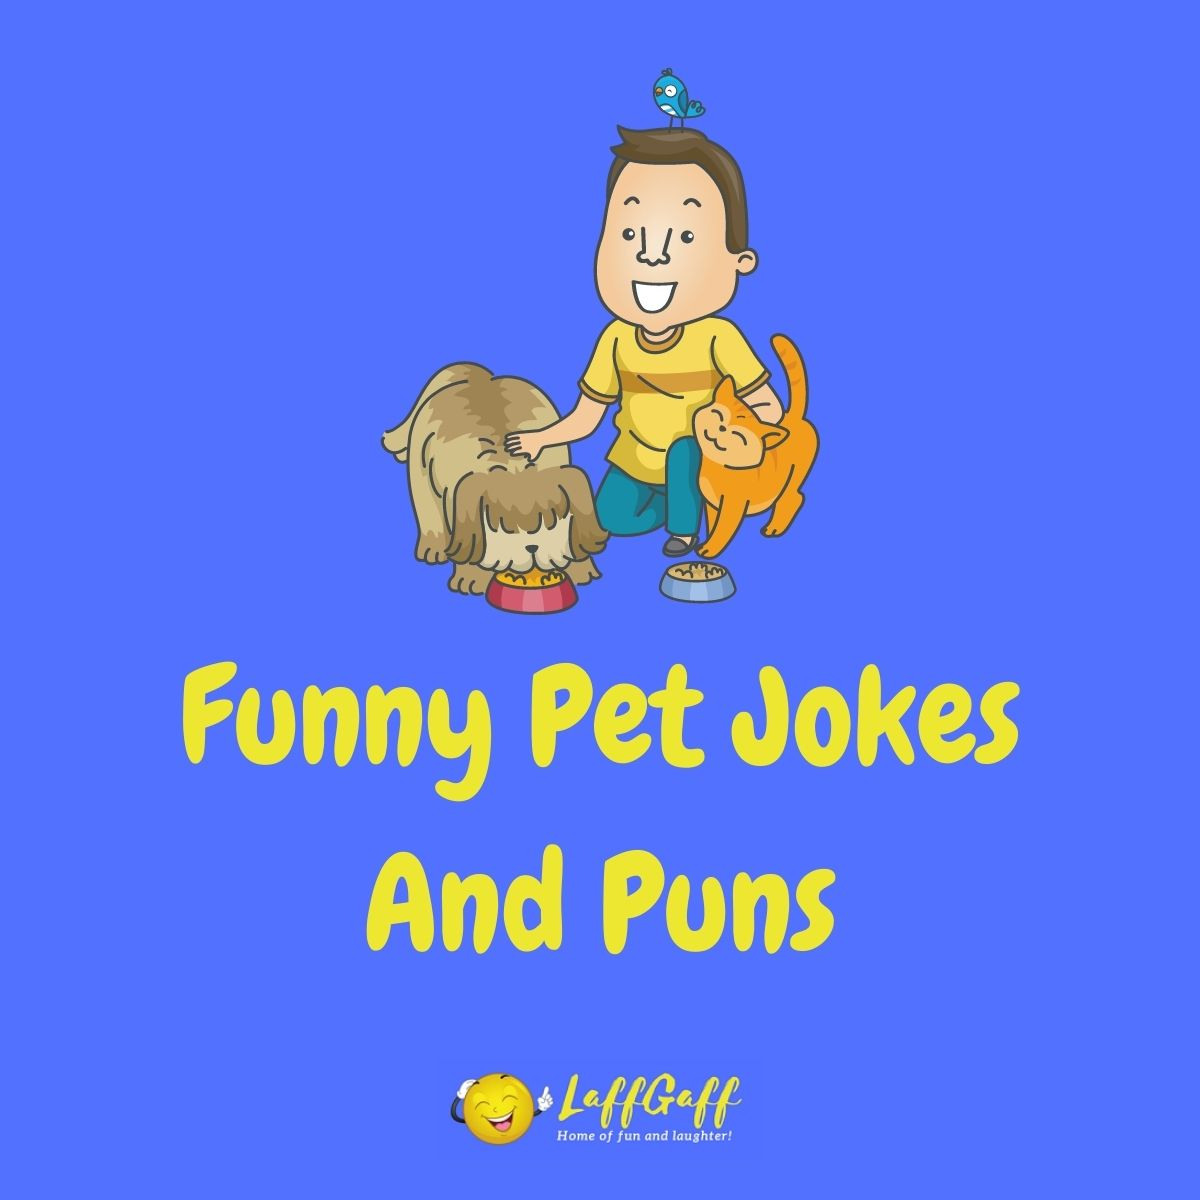 Featured image for a page of funny pet jokes and puns.